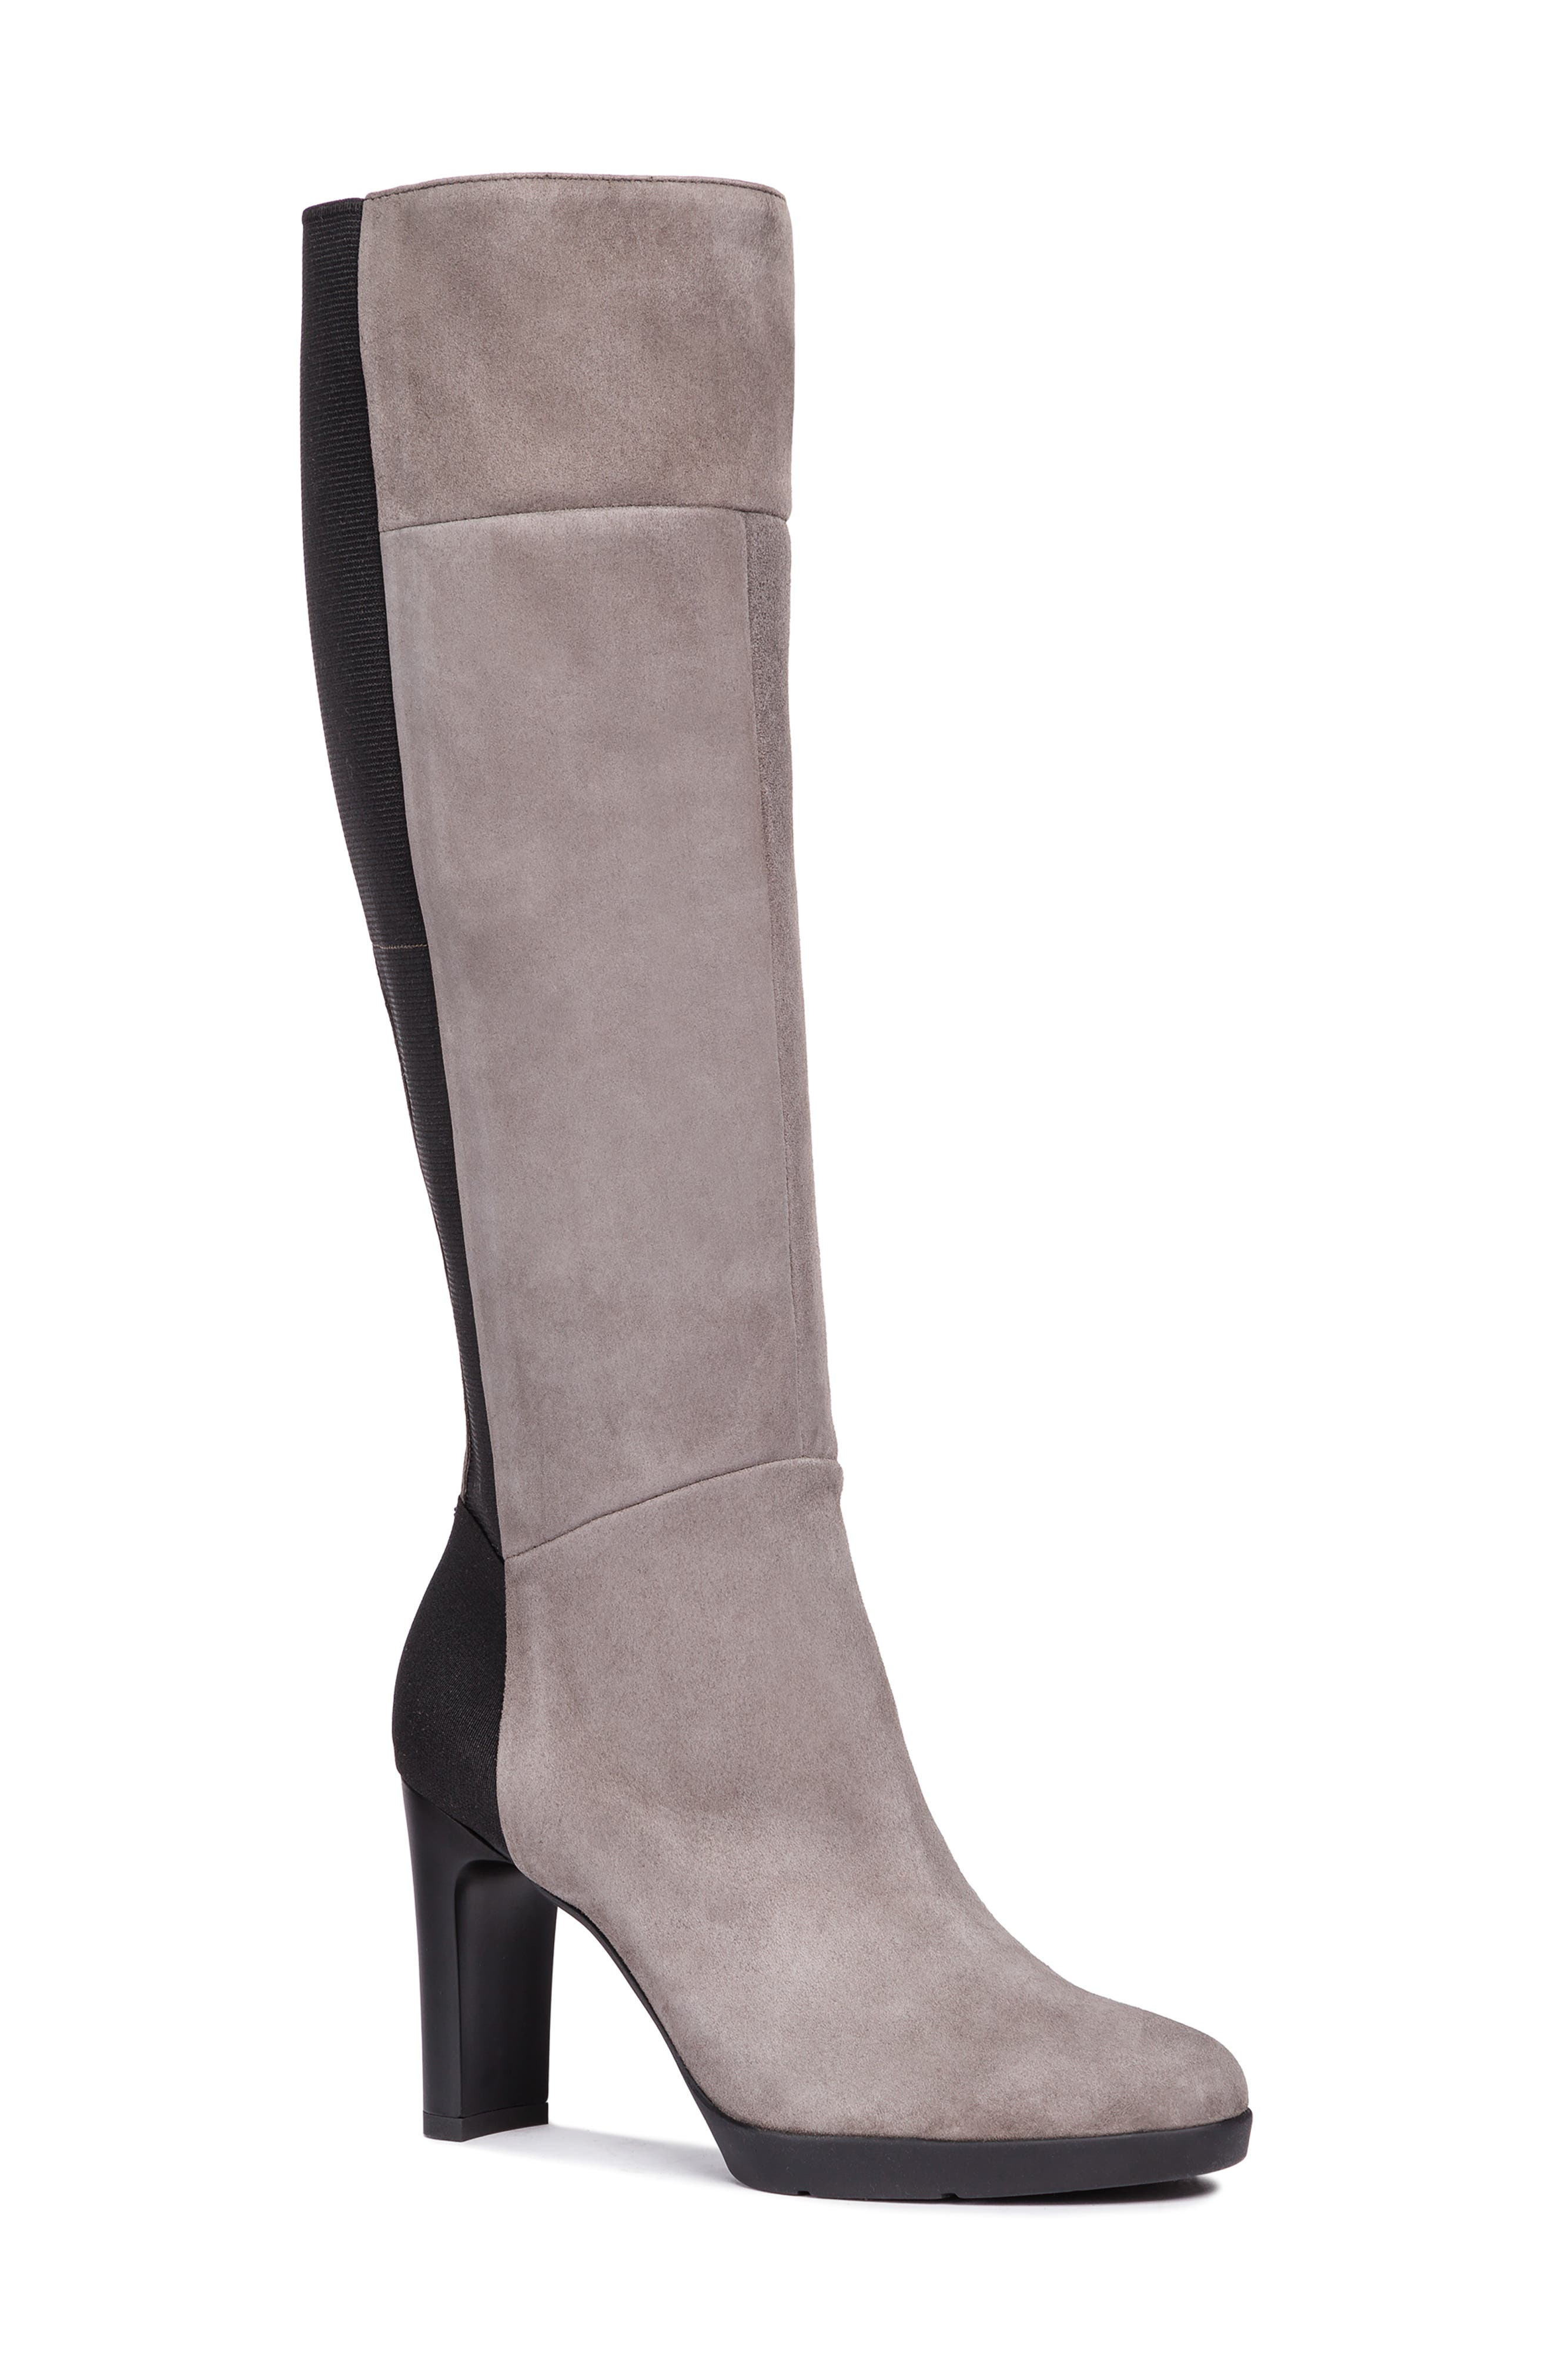 GEOX Annya Knee High Boot, Main, color, CHESTNUT SUEDE